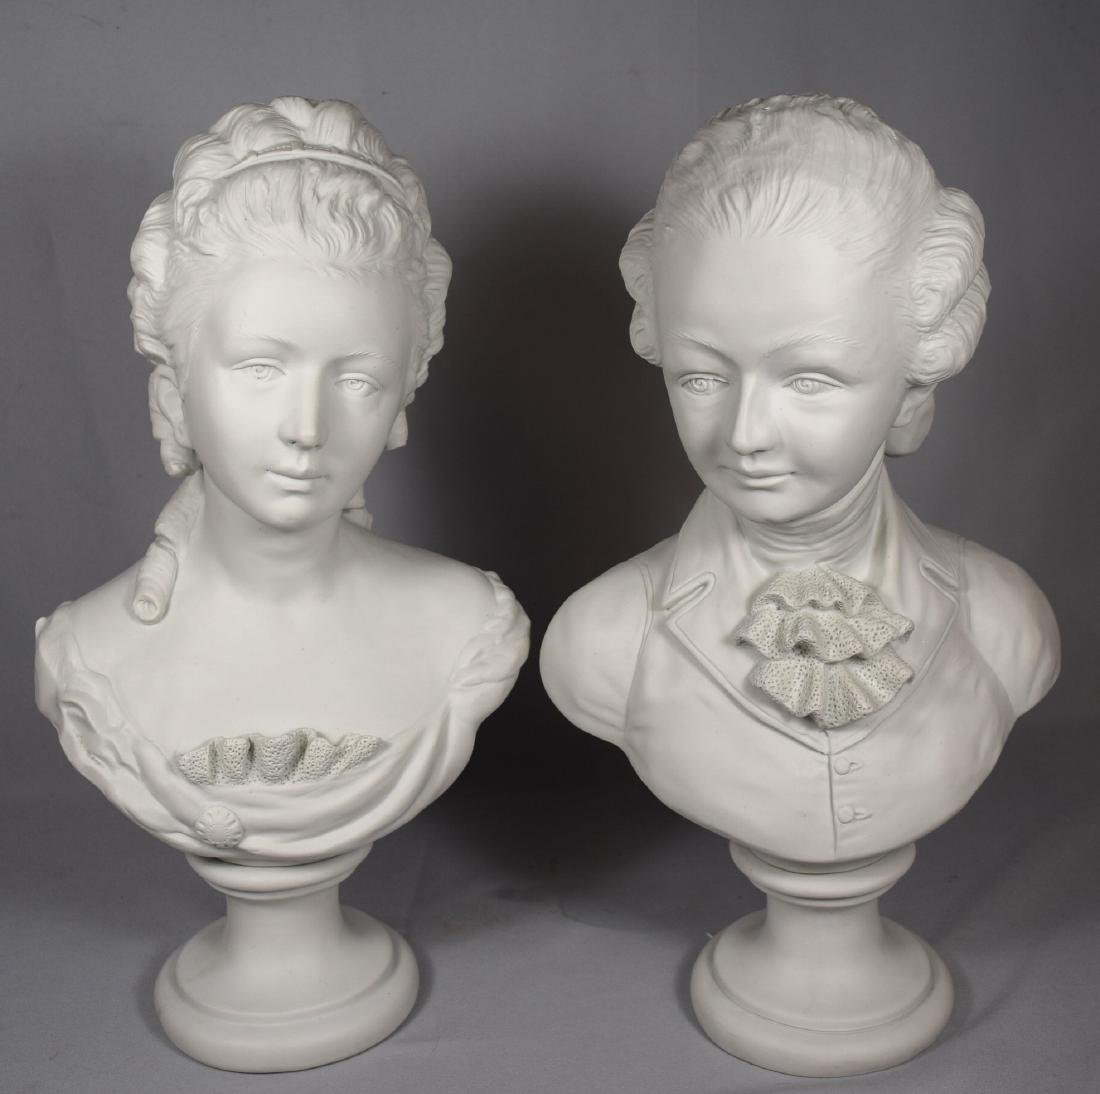 PAIR OF FRENCH PARIAN BUSTS: